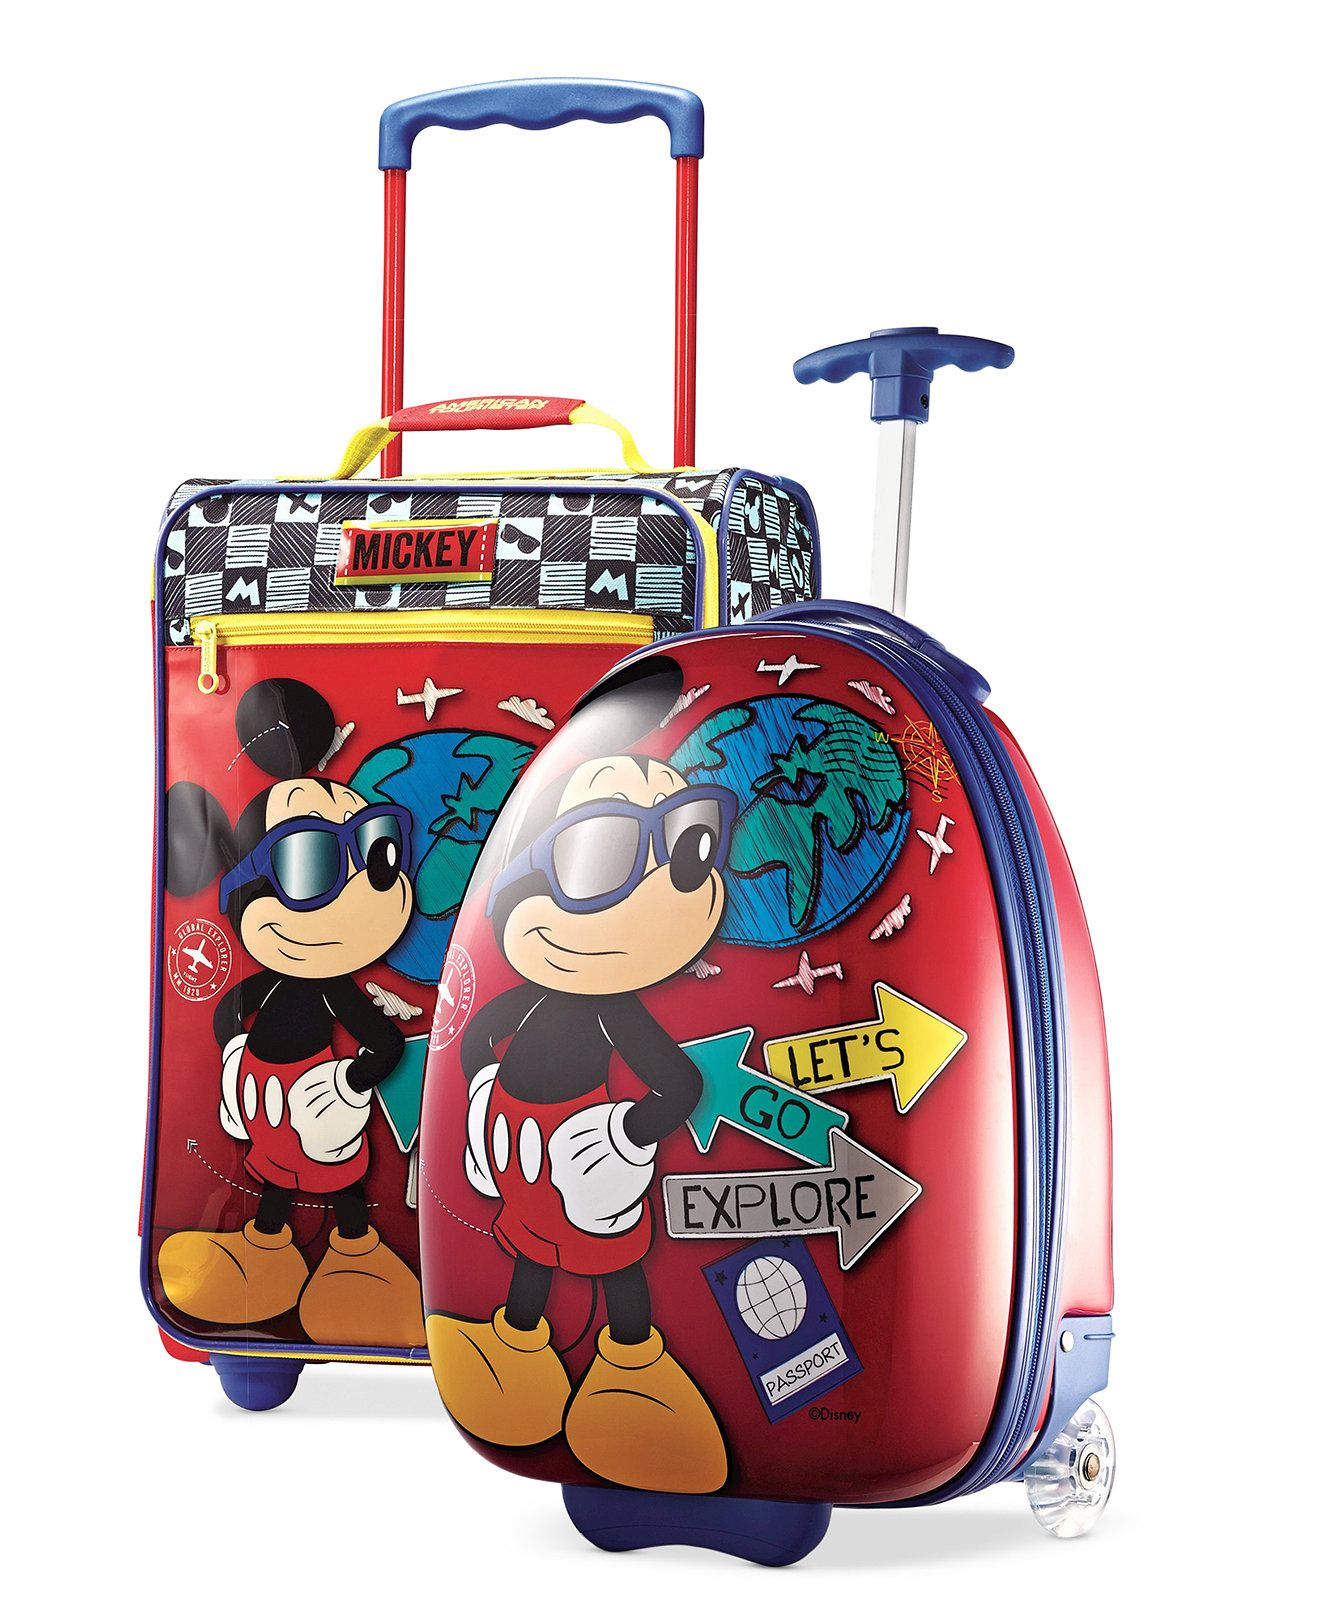 8a93fea6a7 Kids Mickey Mouse Luggage - Kellys Luggage